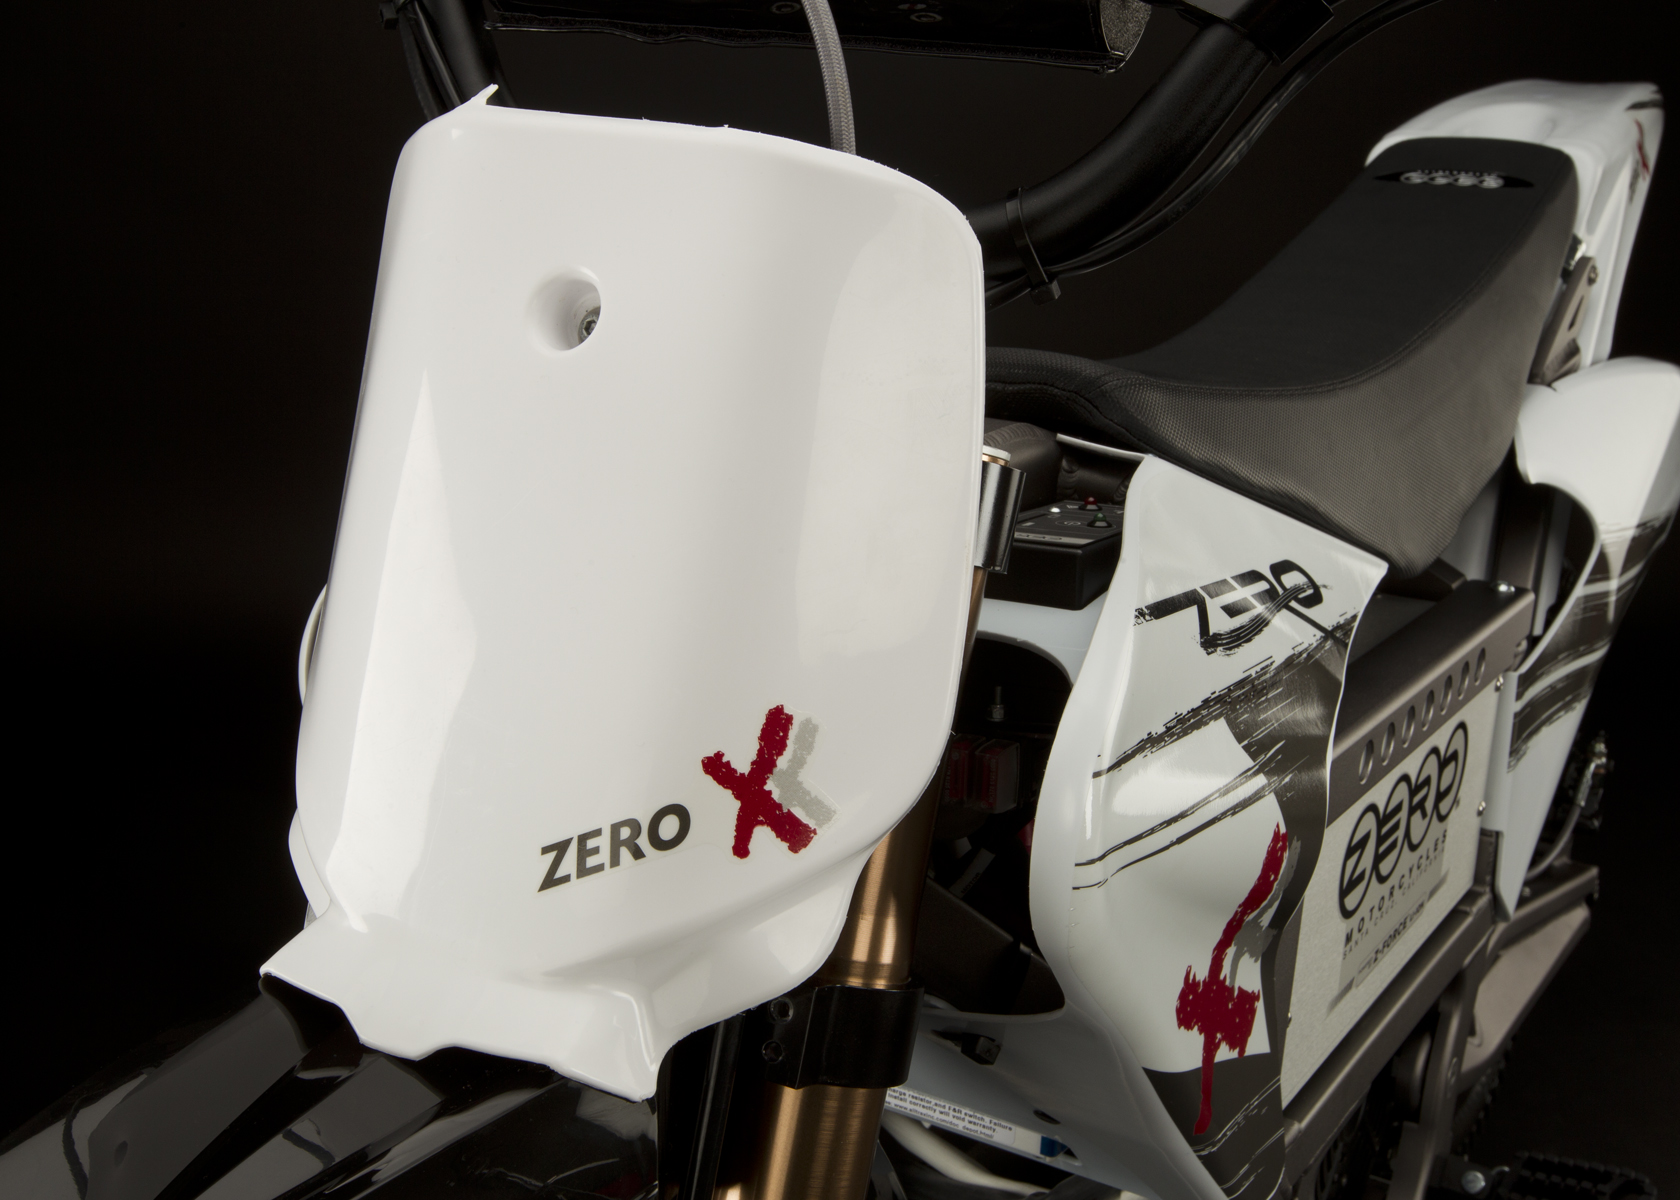 2011 Zero X Electric Motorcycle: Number Plate